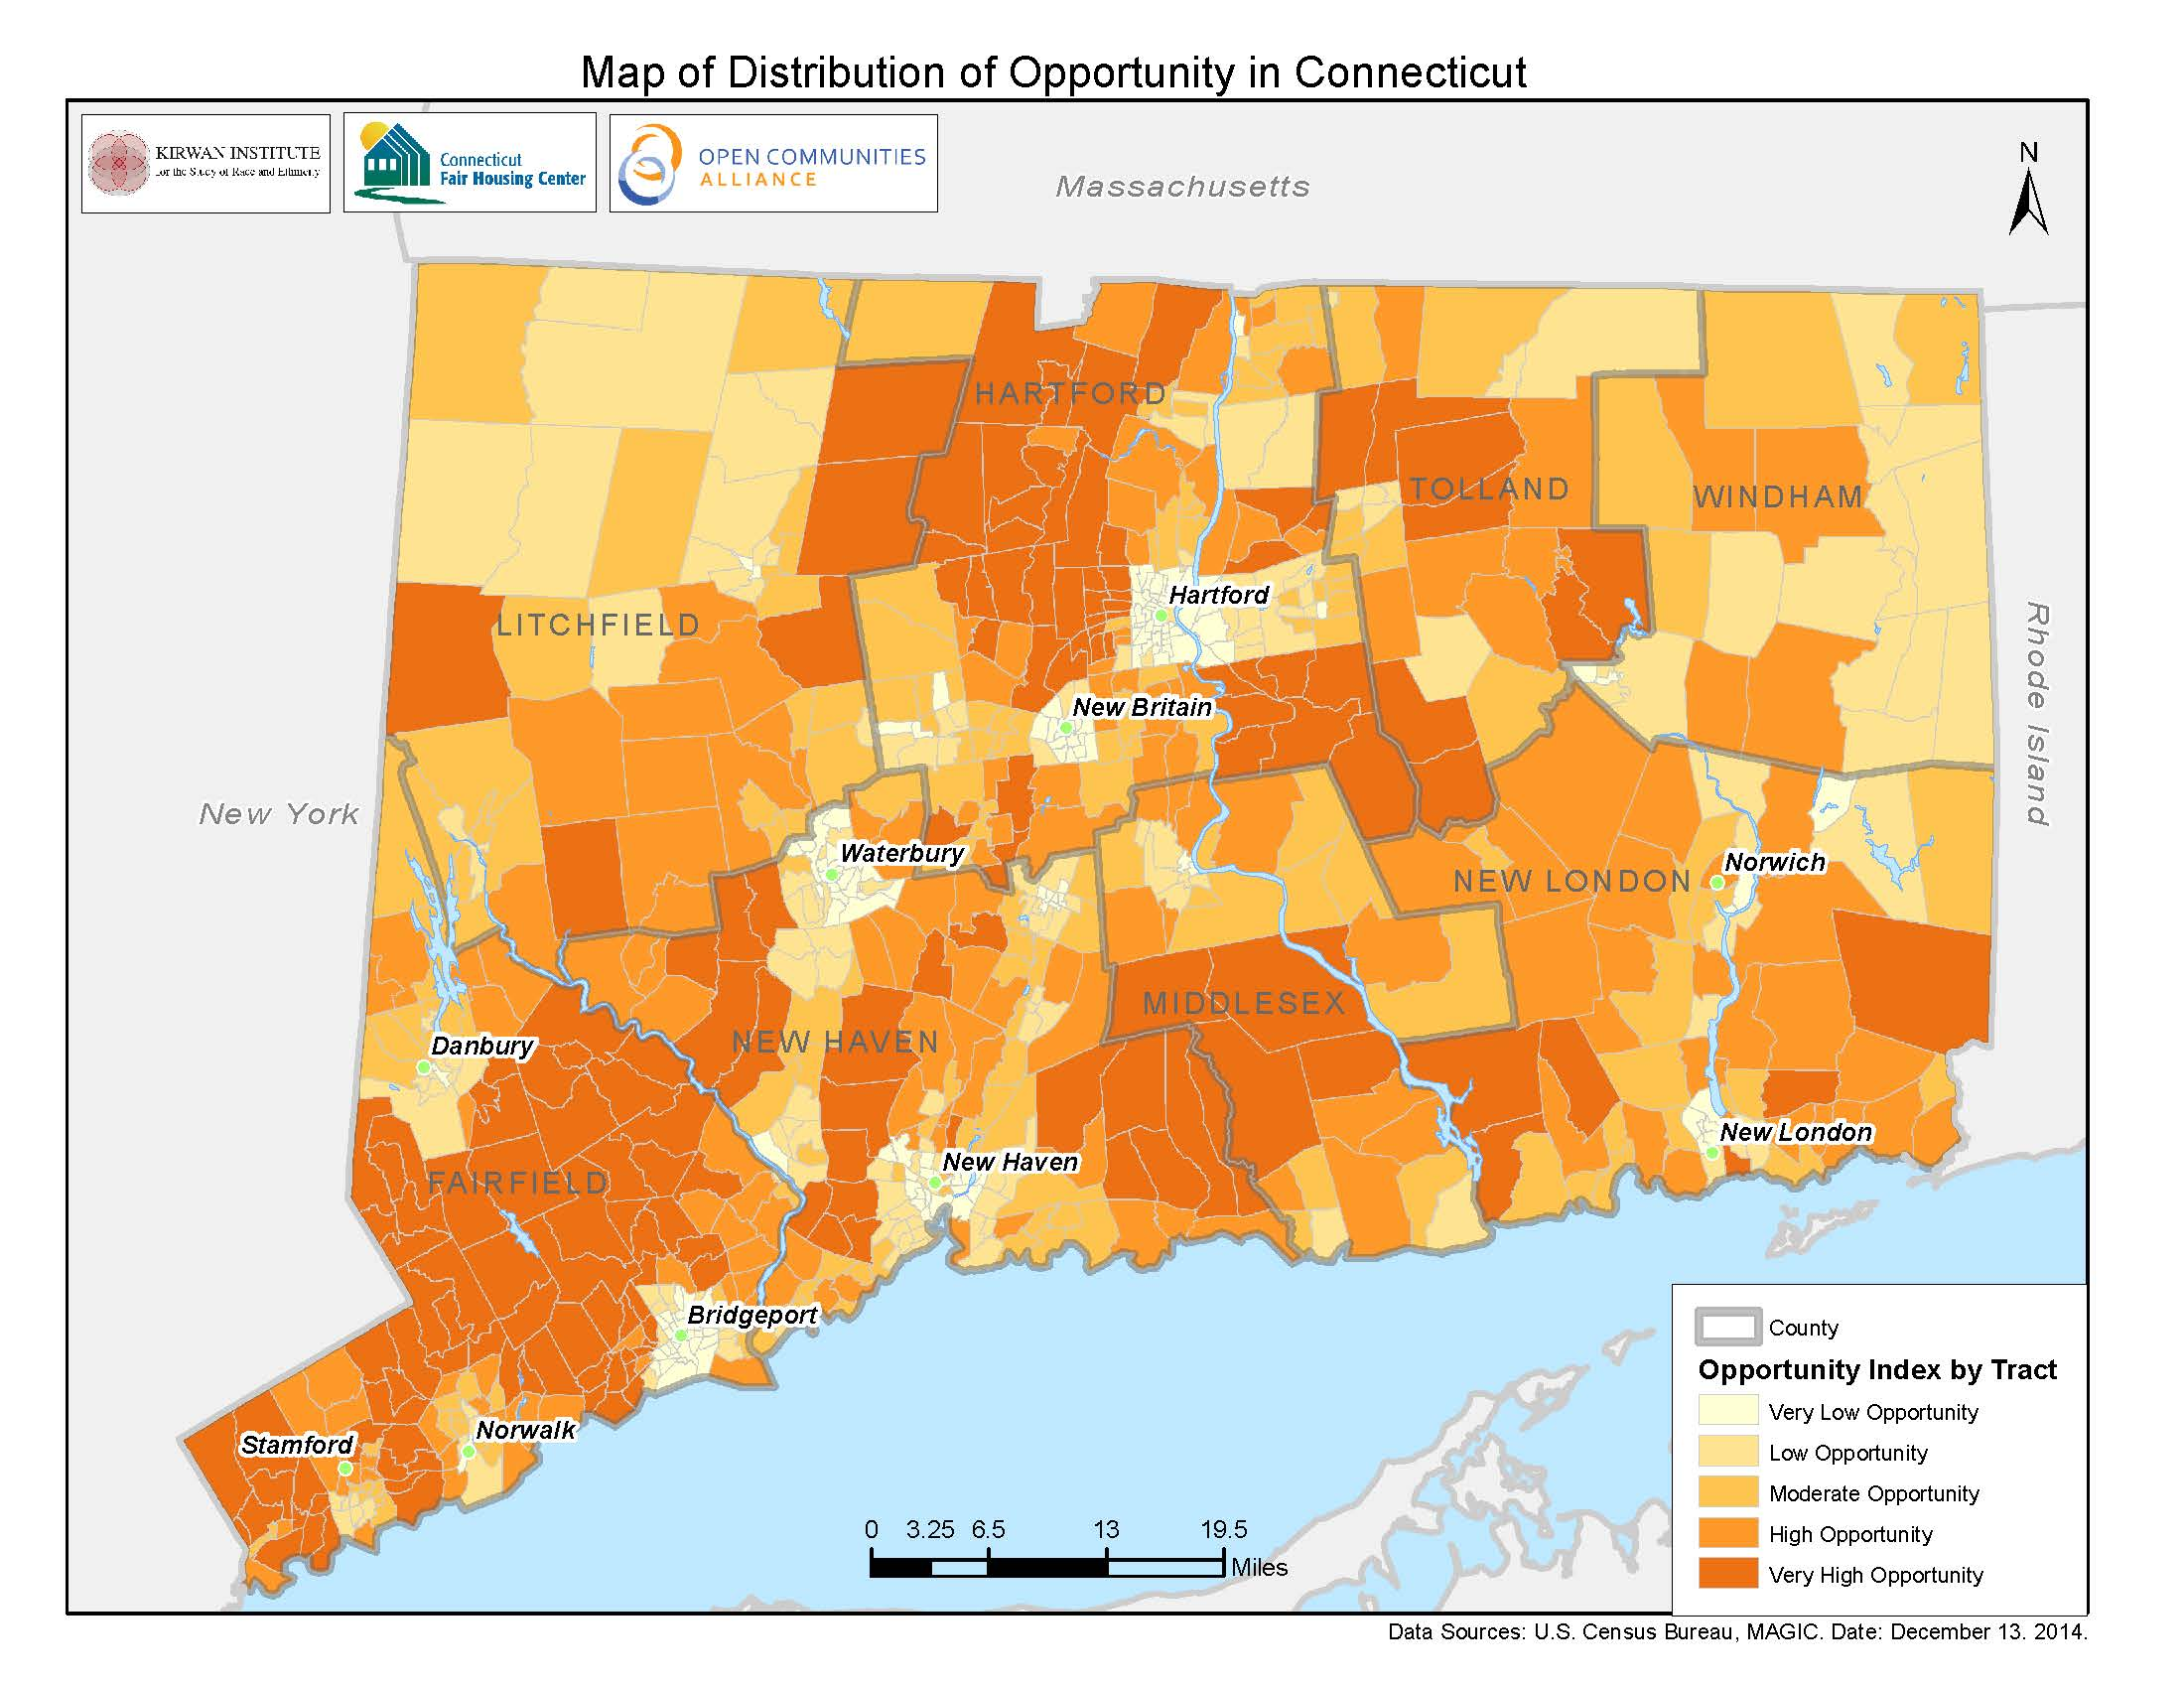 map at Open Communities Alliance Map Fairfield County Ct on new haven county, farmington ct map, hartford ct map, fairfield ct zip code map, johnsonville ct map, area code 203 ct map, middlesex county, fairfield ct on a map, hartford county, stamford ct map, fairfield connecticut, orange county ct map, northampton ct map, new london county ct map, massachusetts map, franklin county ct map, litchfield county, middlesex county ct map, bergen county, rockland county, windham county ct map, fairfield university, new london ct street map, dutchess county, pleasure beach, westchester county ny map, fairfield university ct map, putnam county, greenwich ct map, westchester county ct map, westchester county, new canaan,